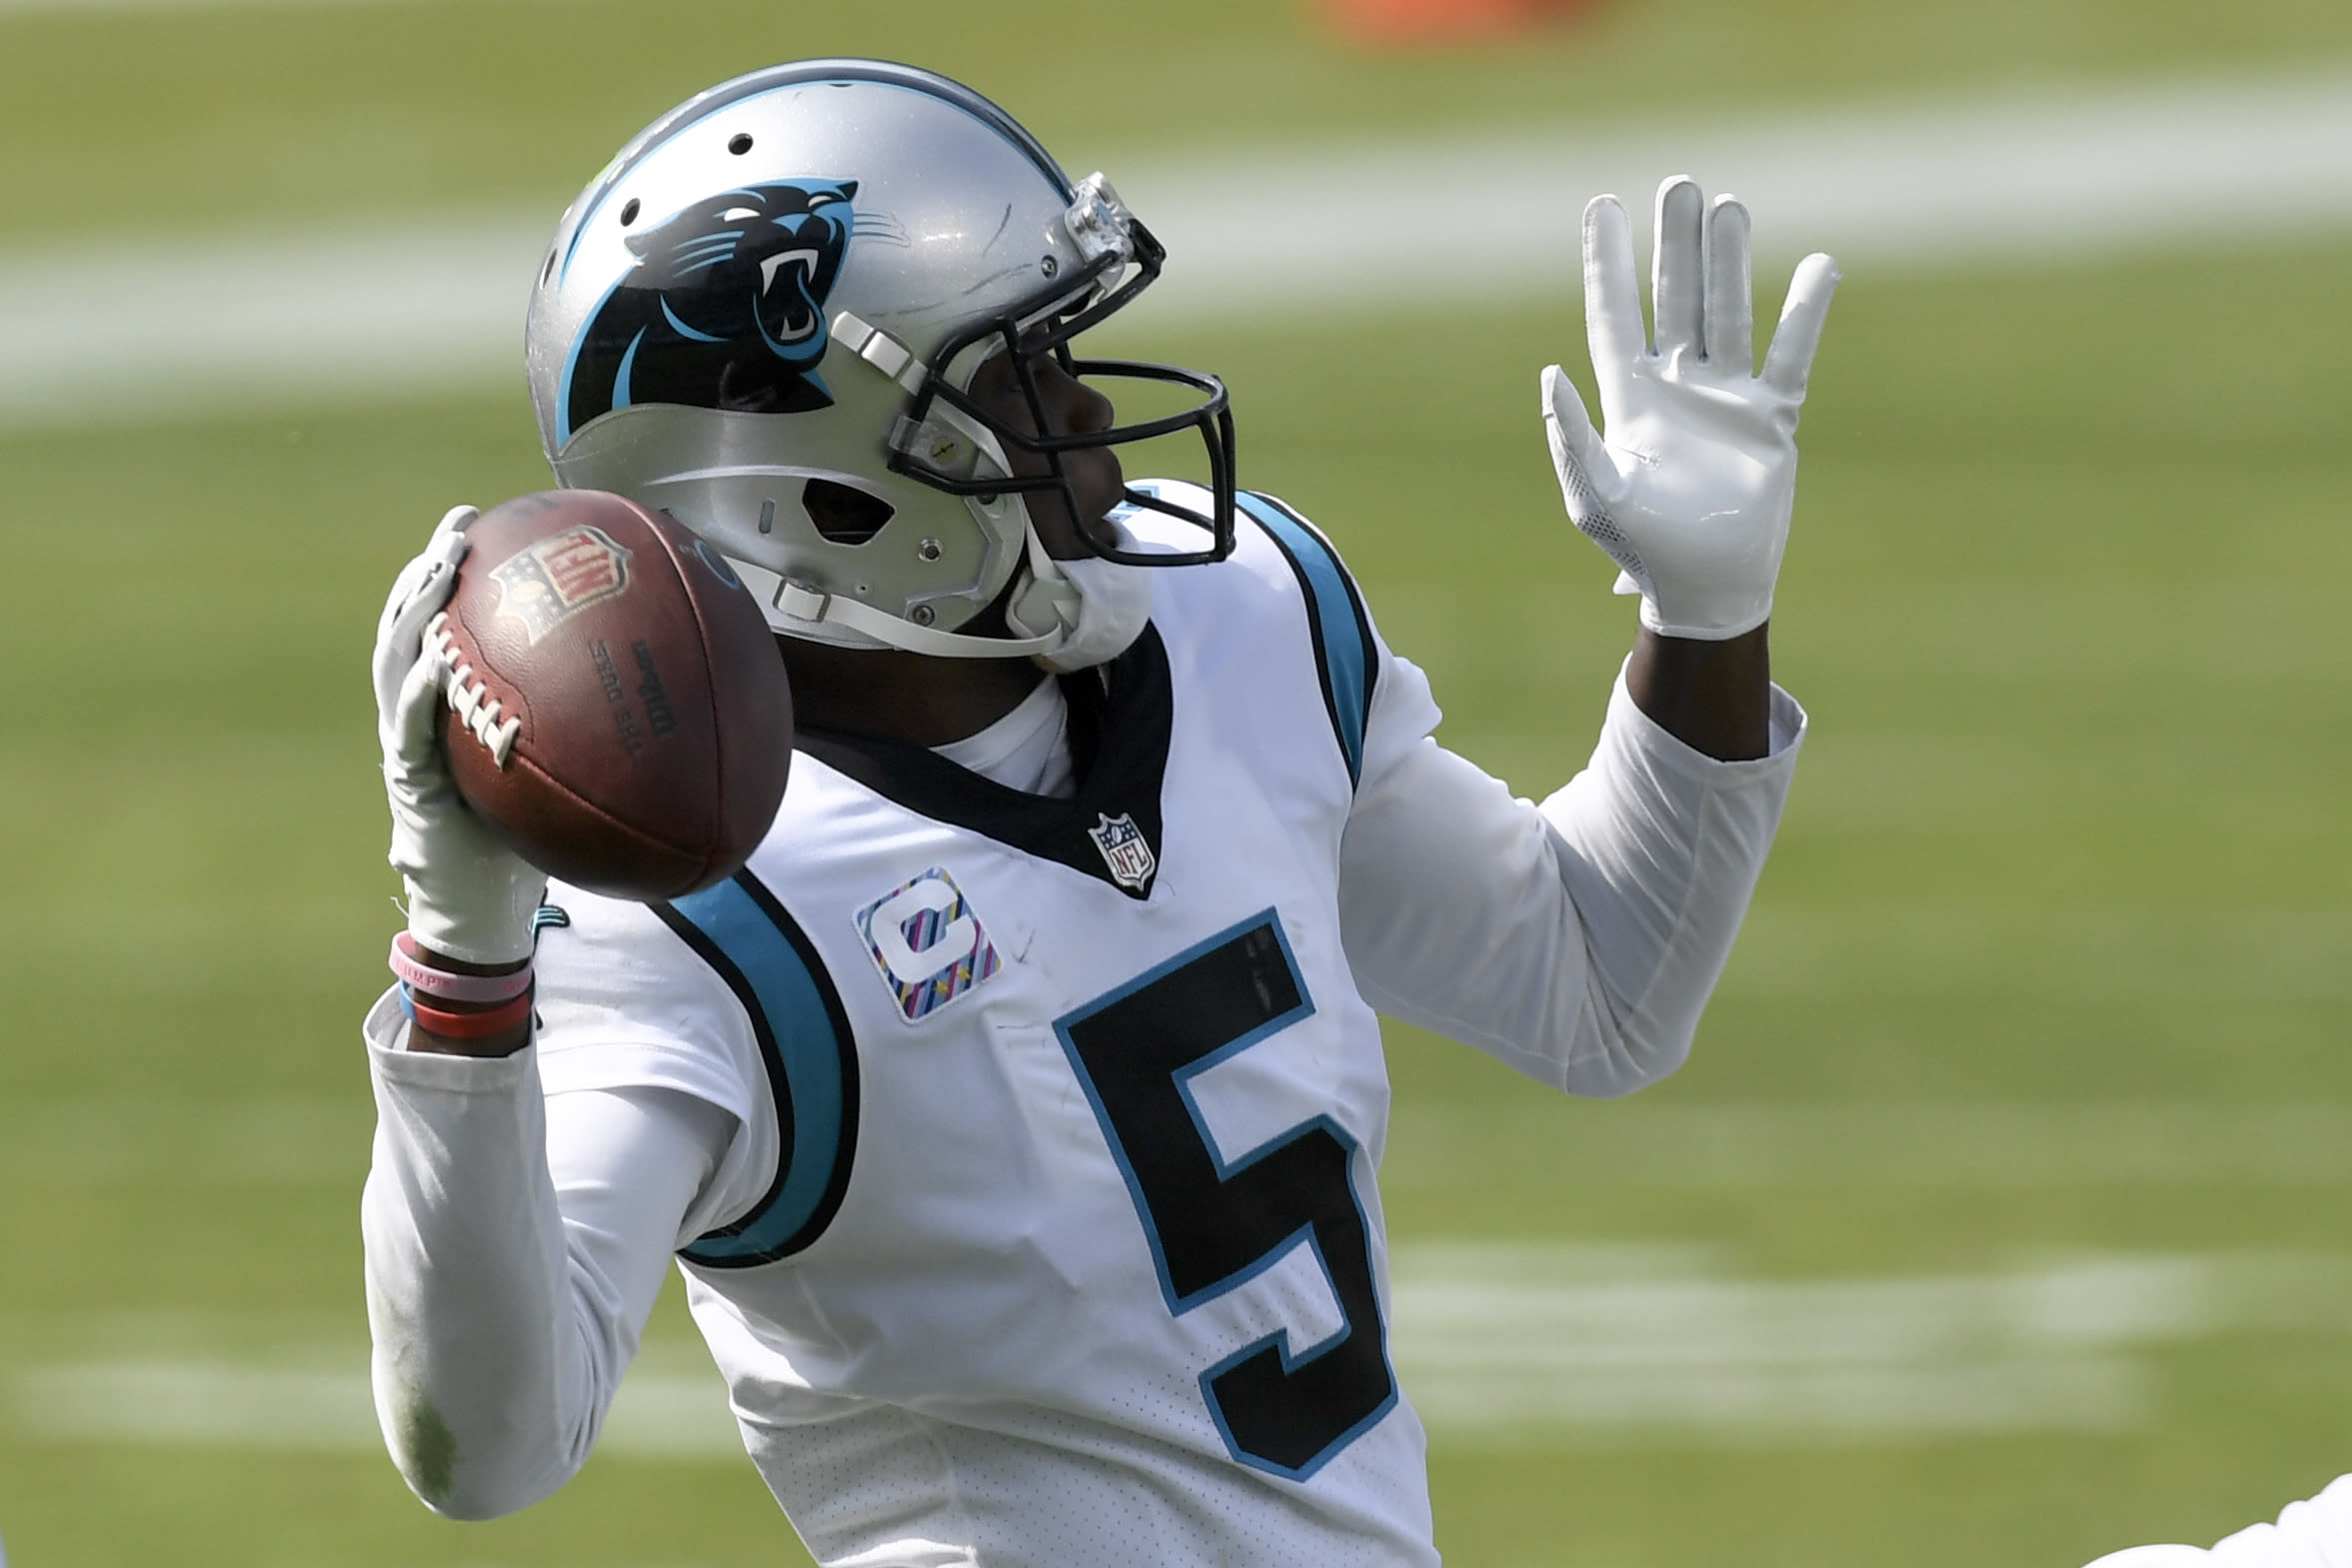 Carolina Panthers quarterback Teddy Bridgewater passes against the Arizona Cardinals during the second half of an NFL football game Sunday, Oct. 4, 2020, in Charlotte, N.C. (AP Photo/Mike McCarn)